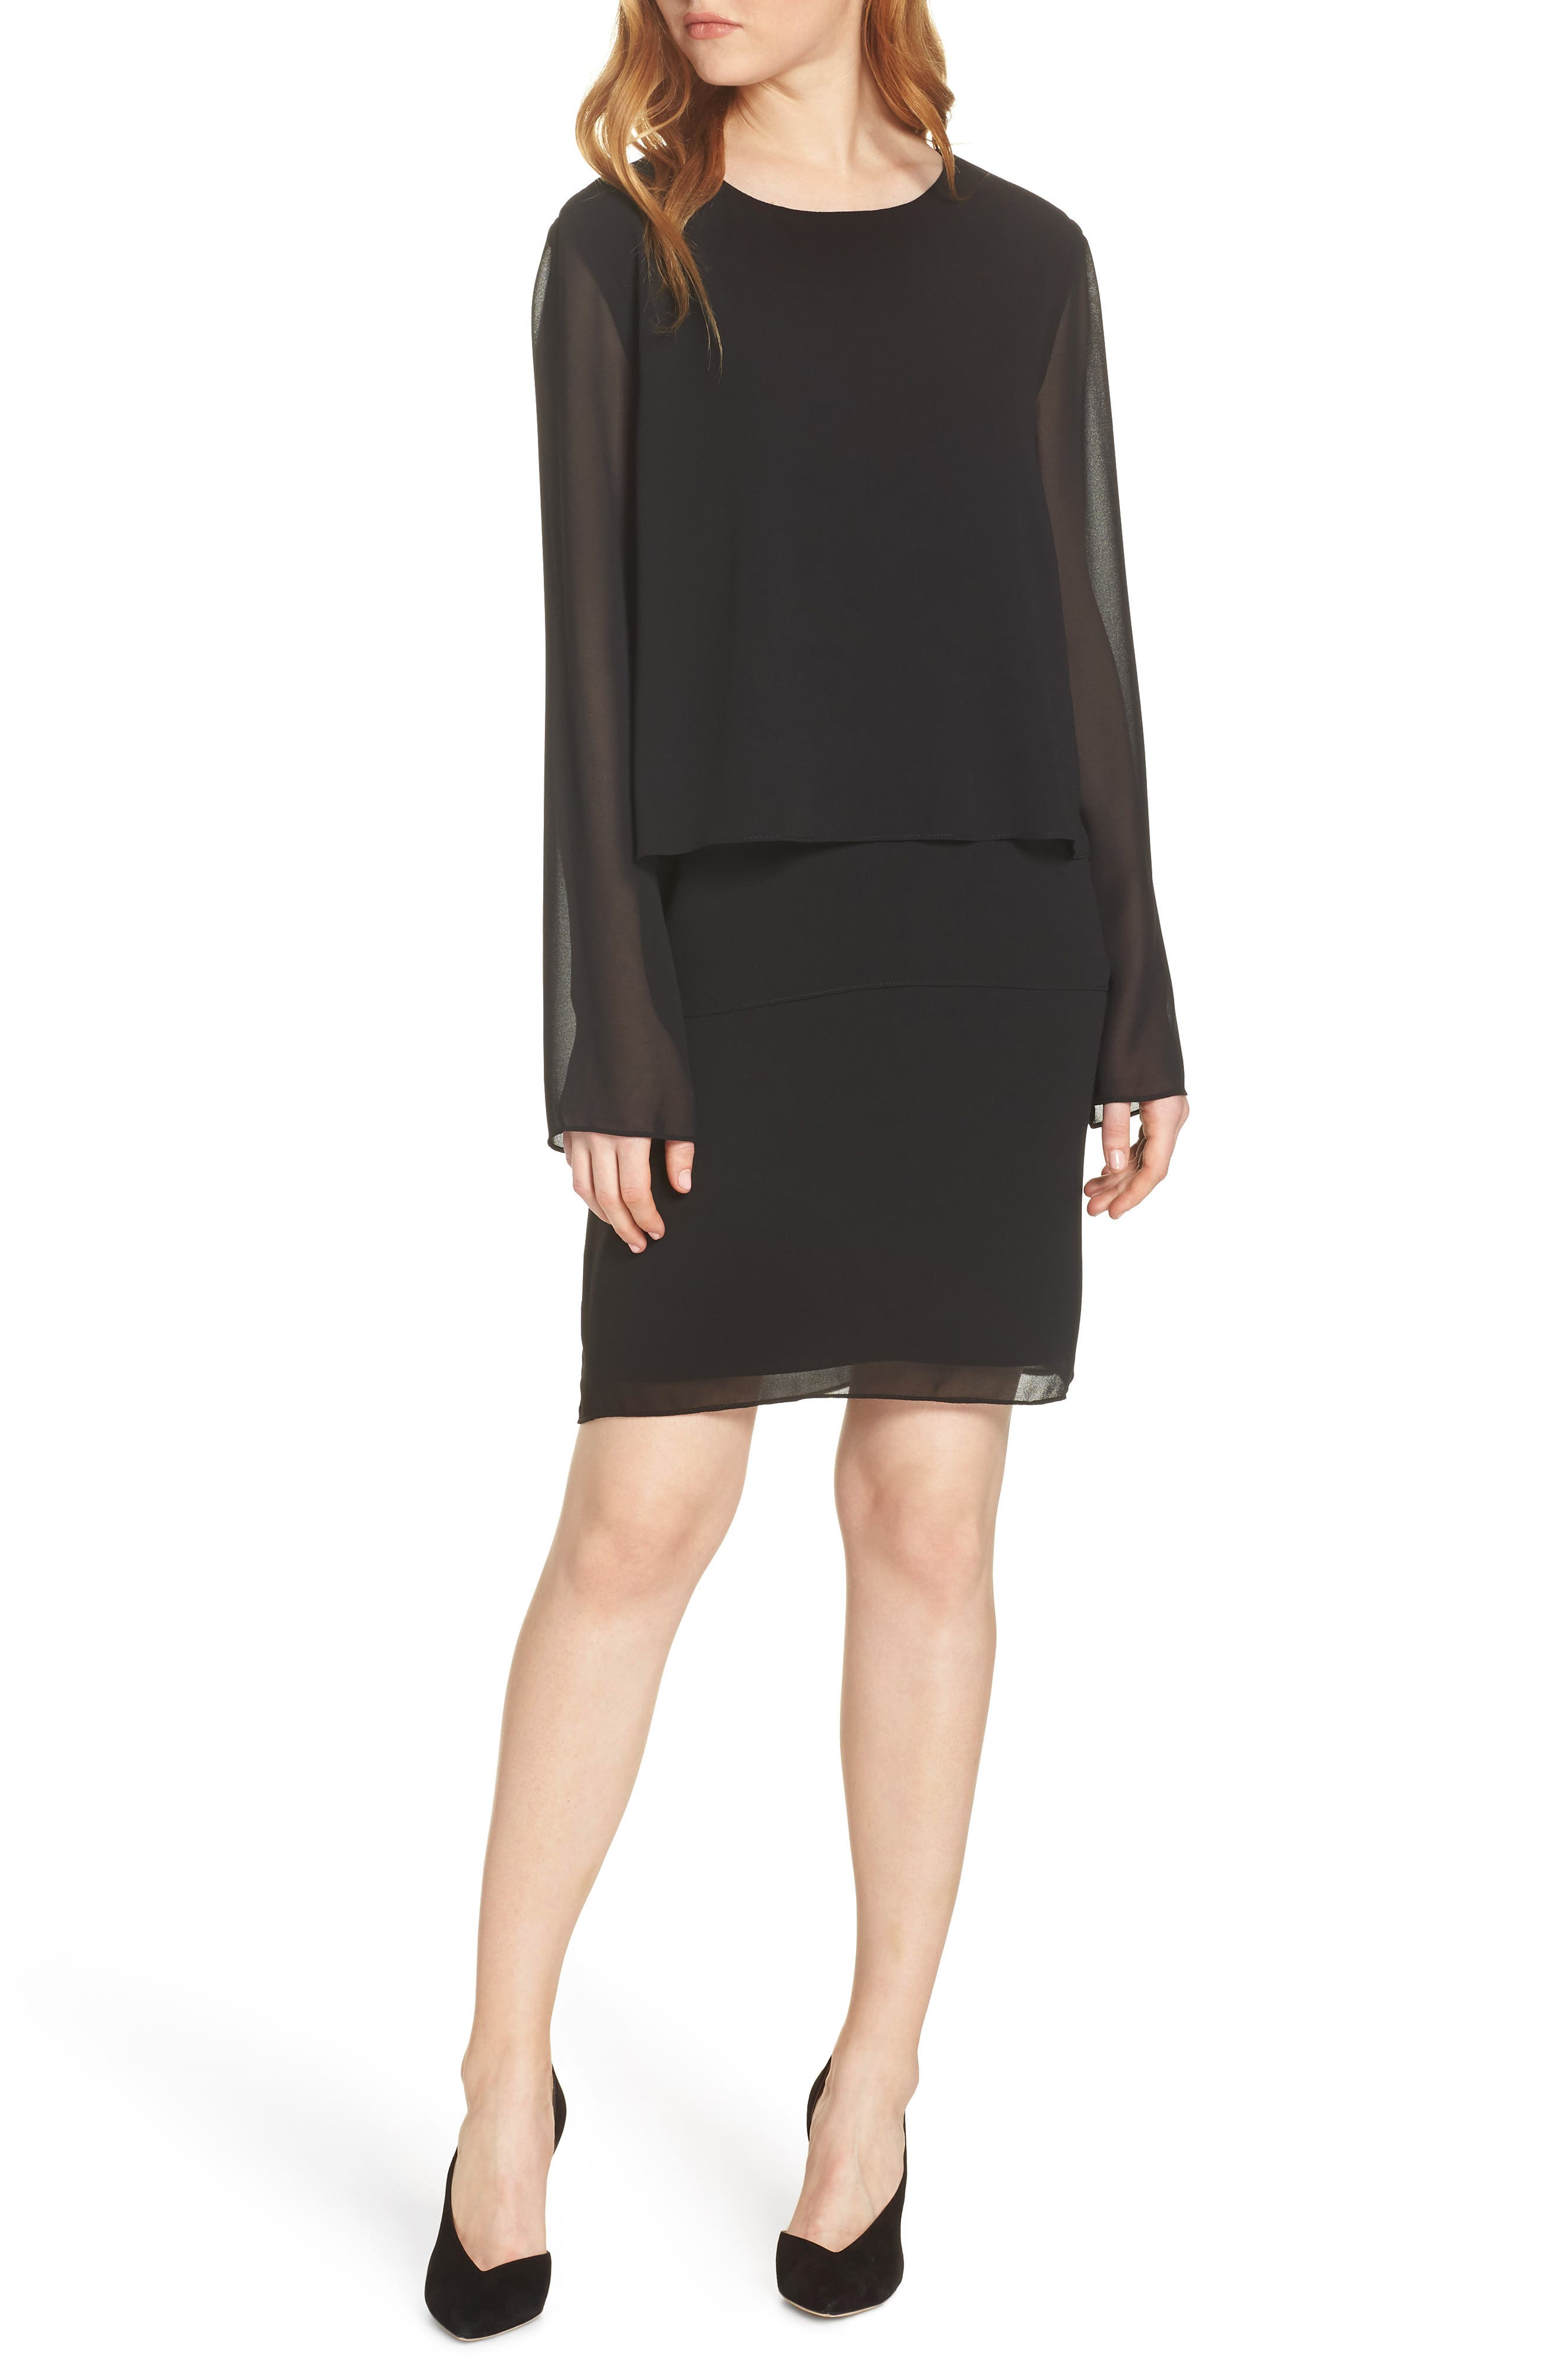 CHARLES HENRY Layered Popover Chiffon Dress, Main, color, 001